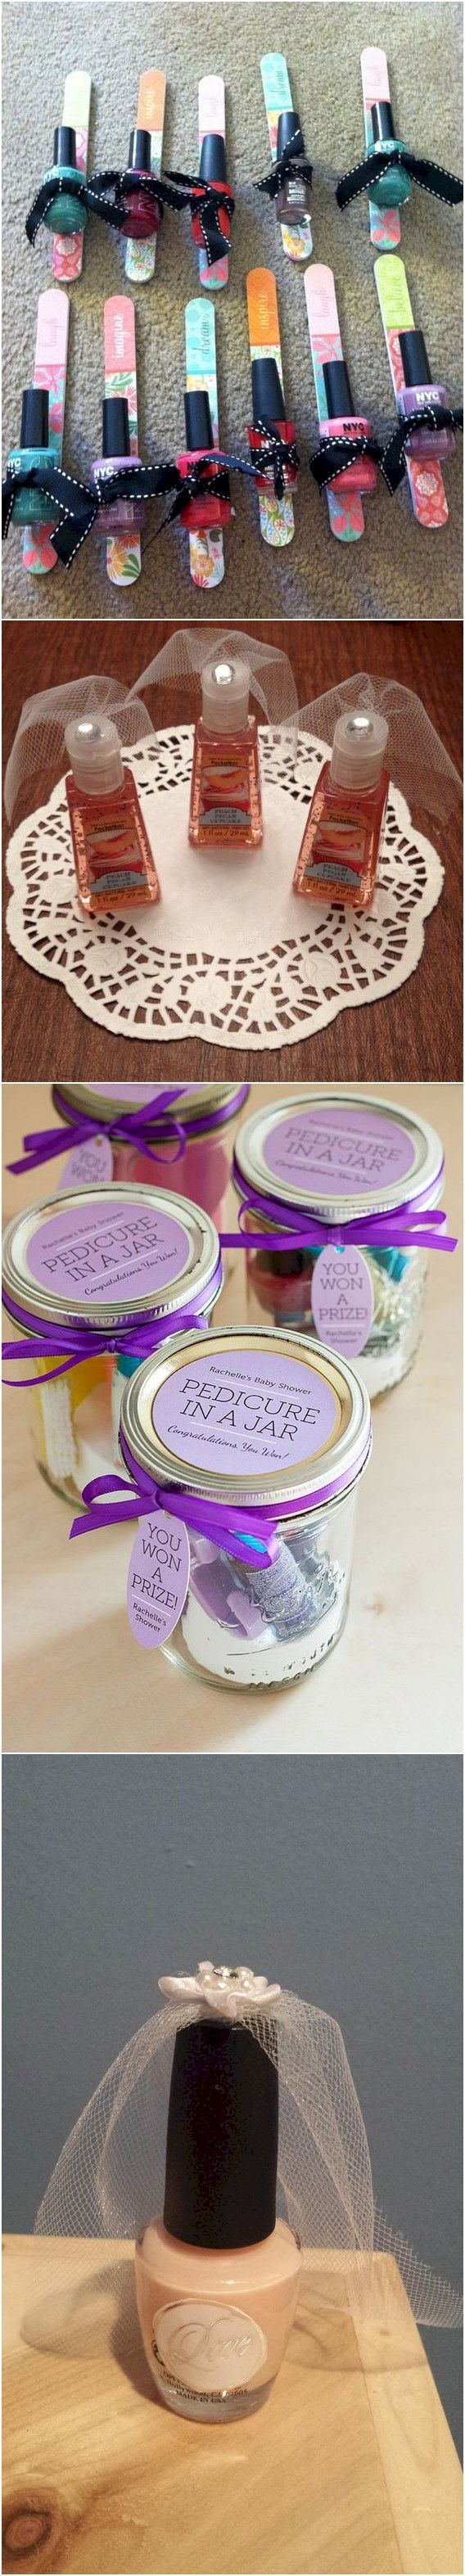 Bridal Shower Gift Baskets For Guests : adorable bridal shower ideas 47 diy rustic adorable bridal shower ...